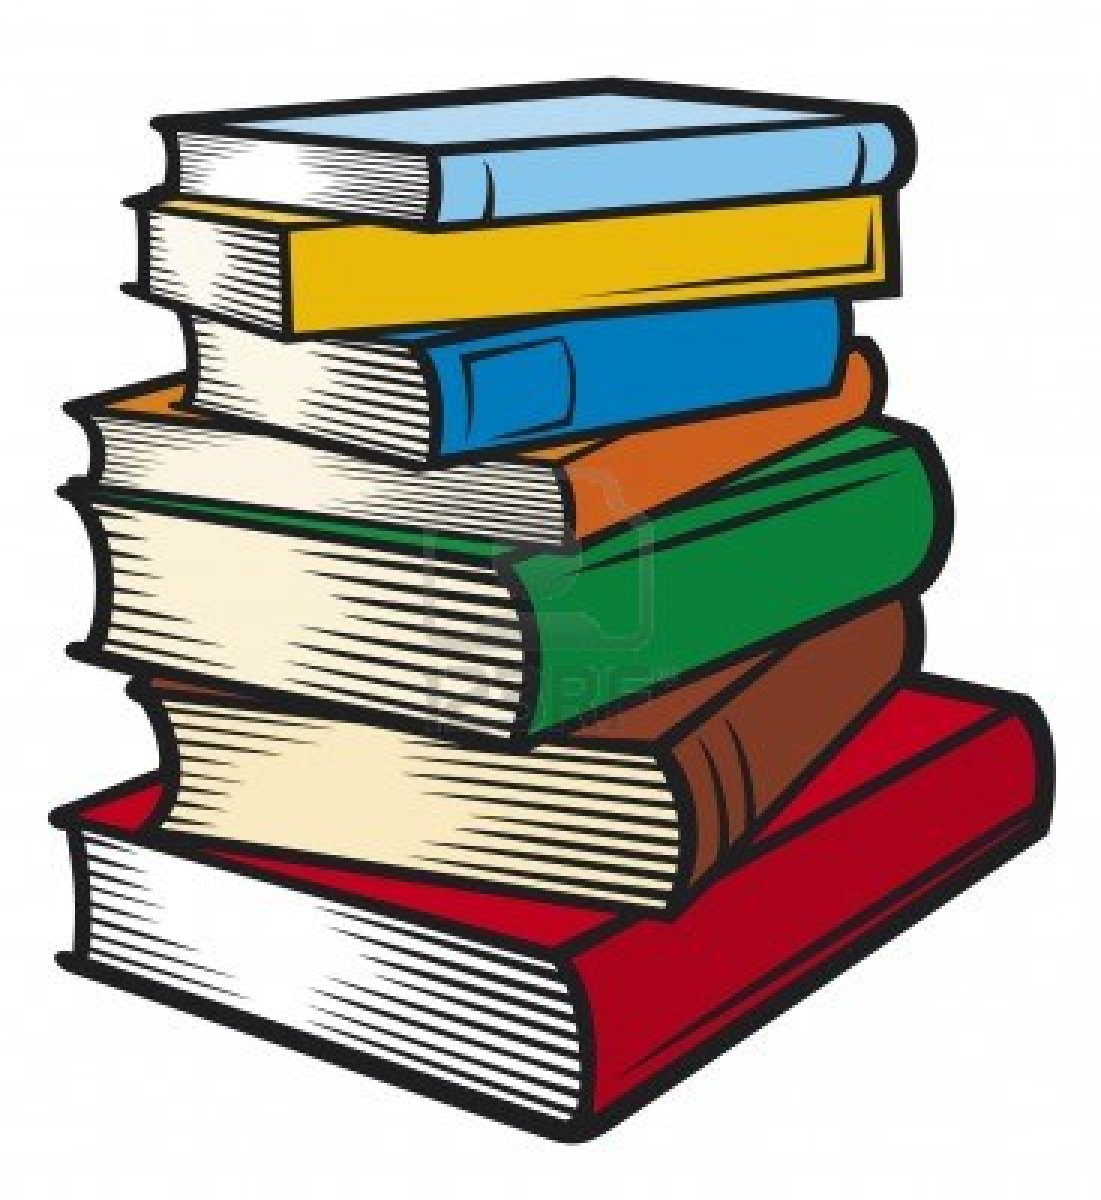 hight resolution of books clipart 8204